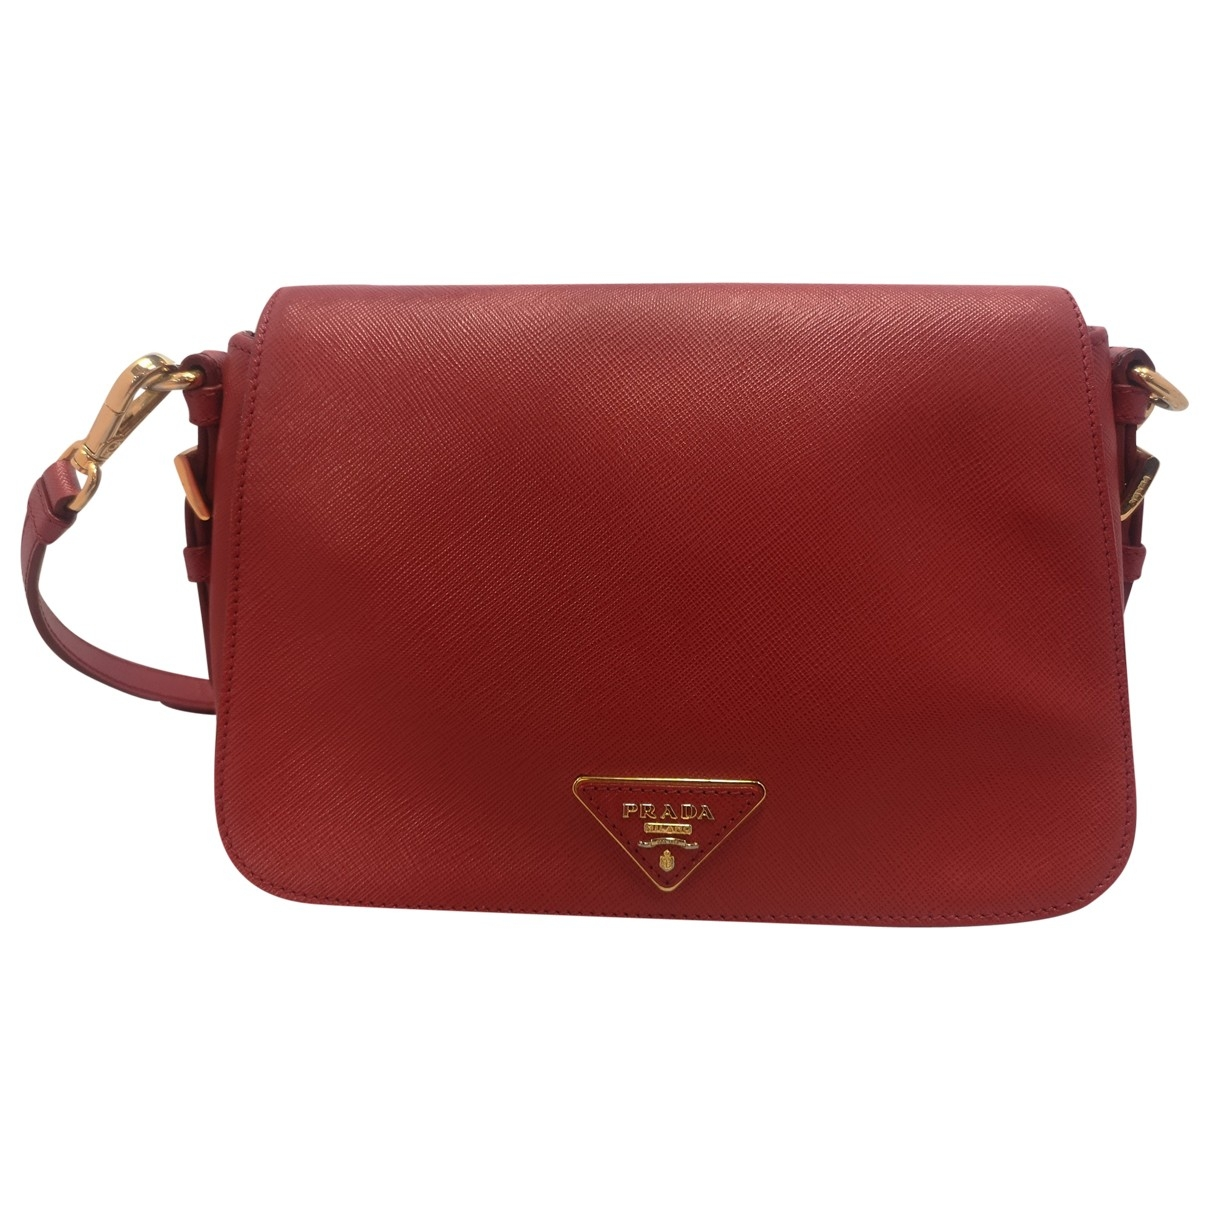 Prada \N Red Leather handbag for Women \N